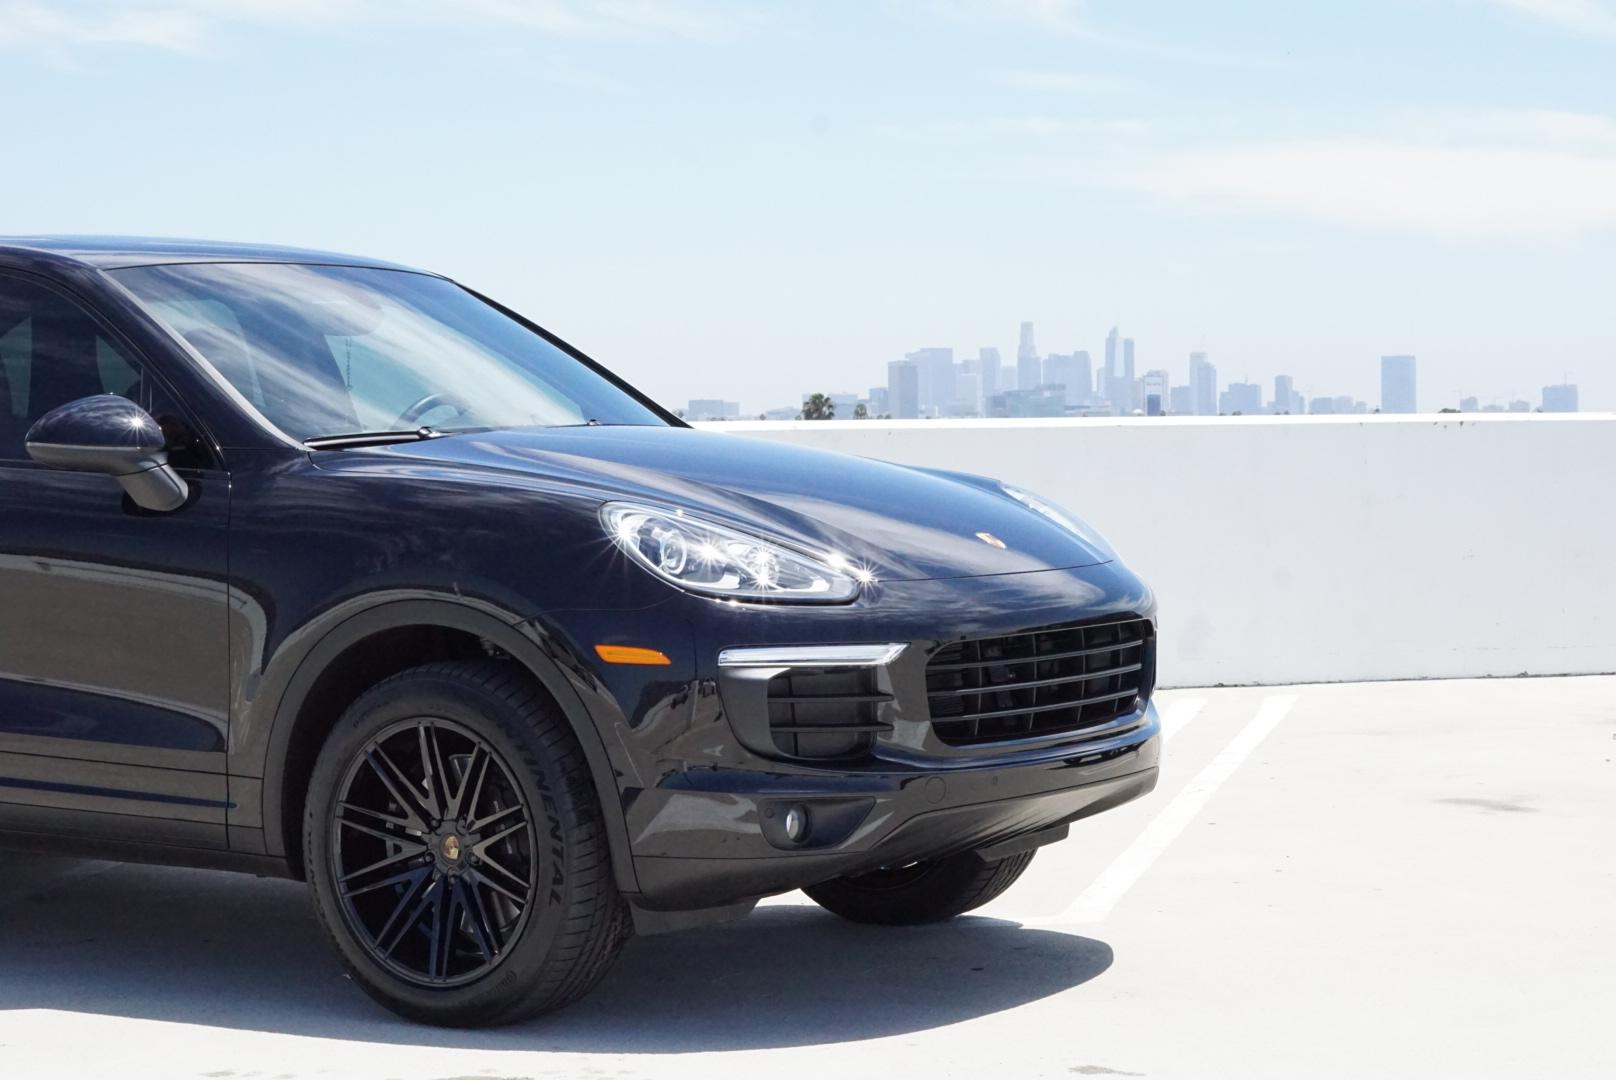 Custom Rennen Wheels for Porsche Cayenne